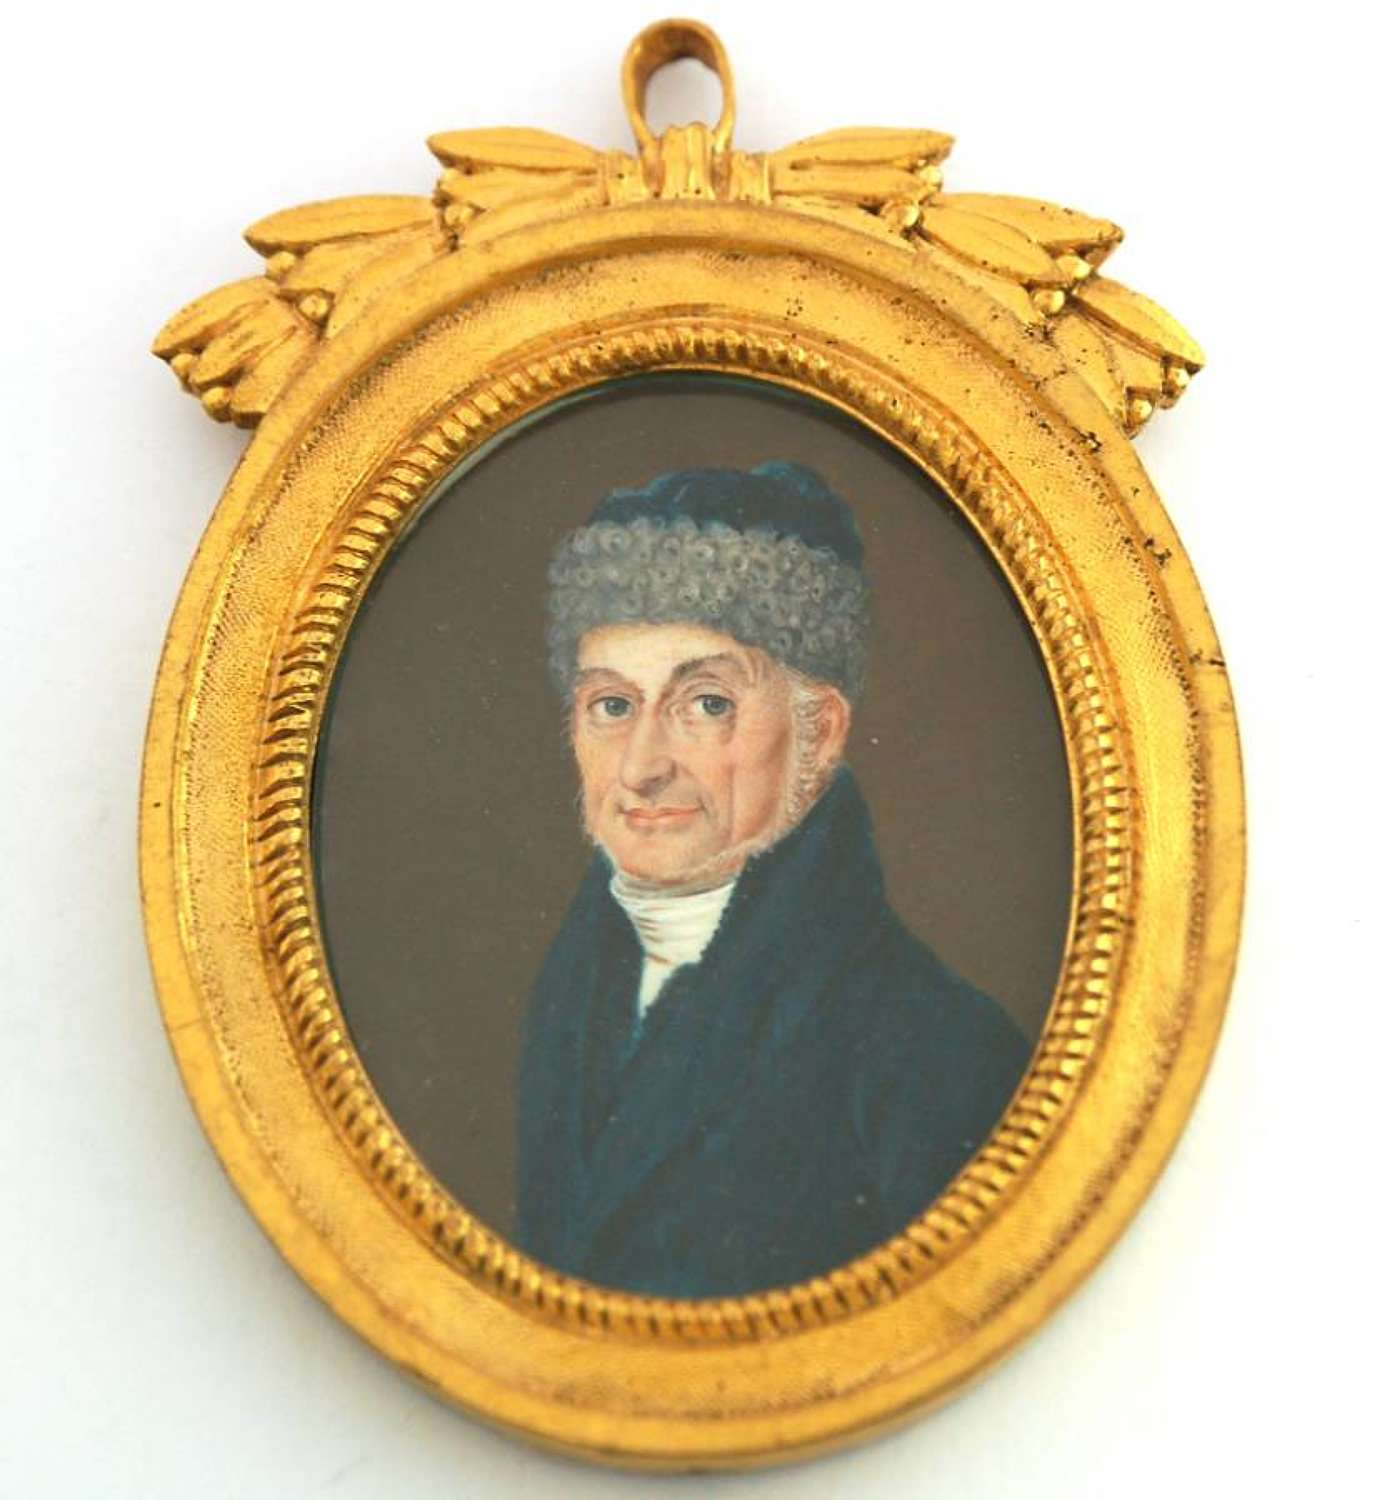 Gent with fur-trimmed hat